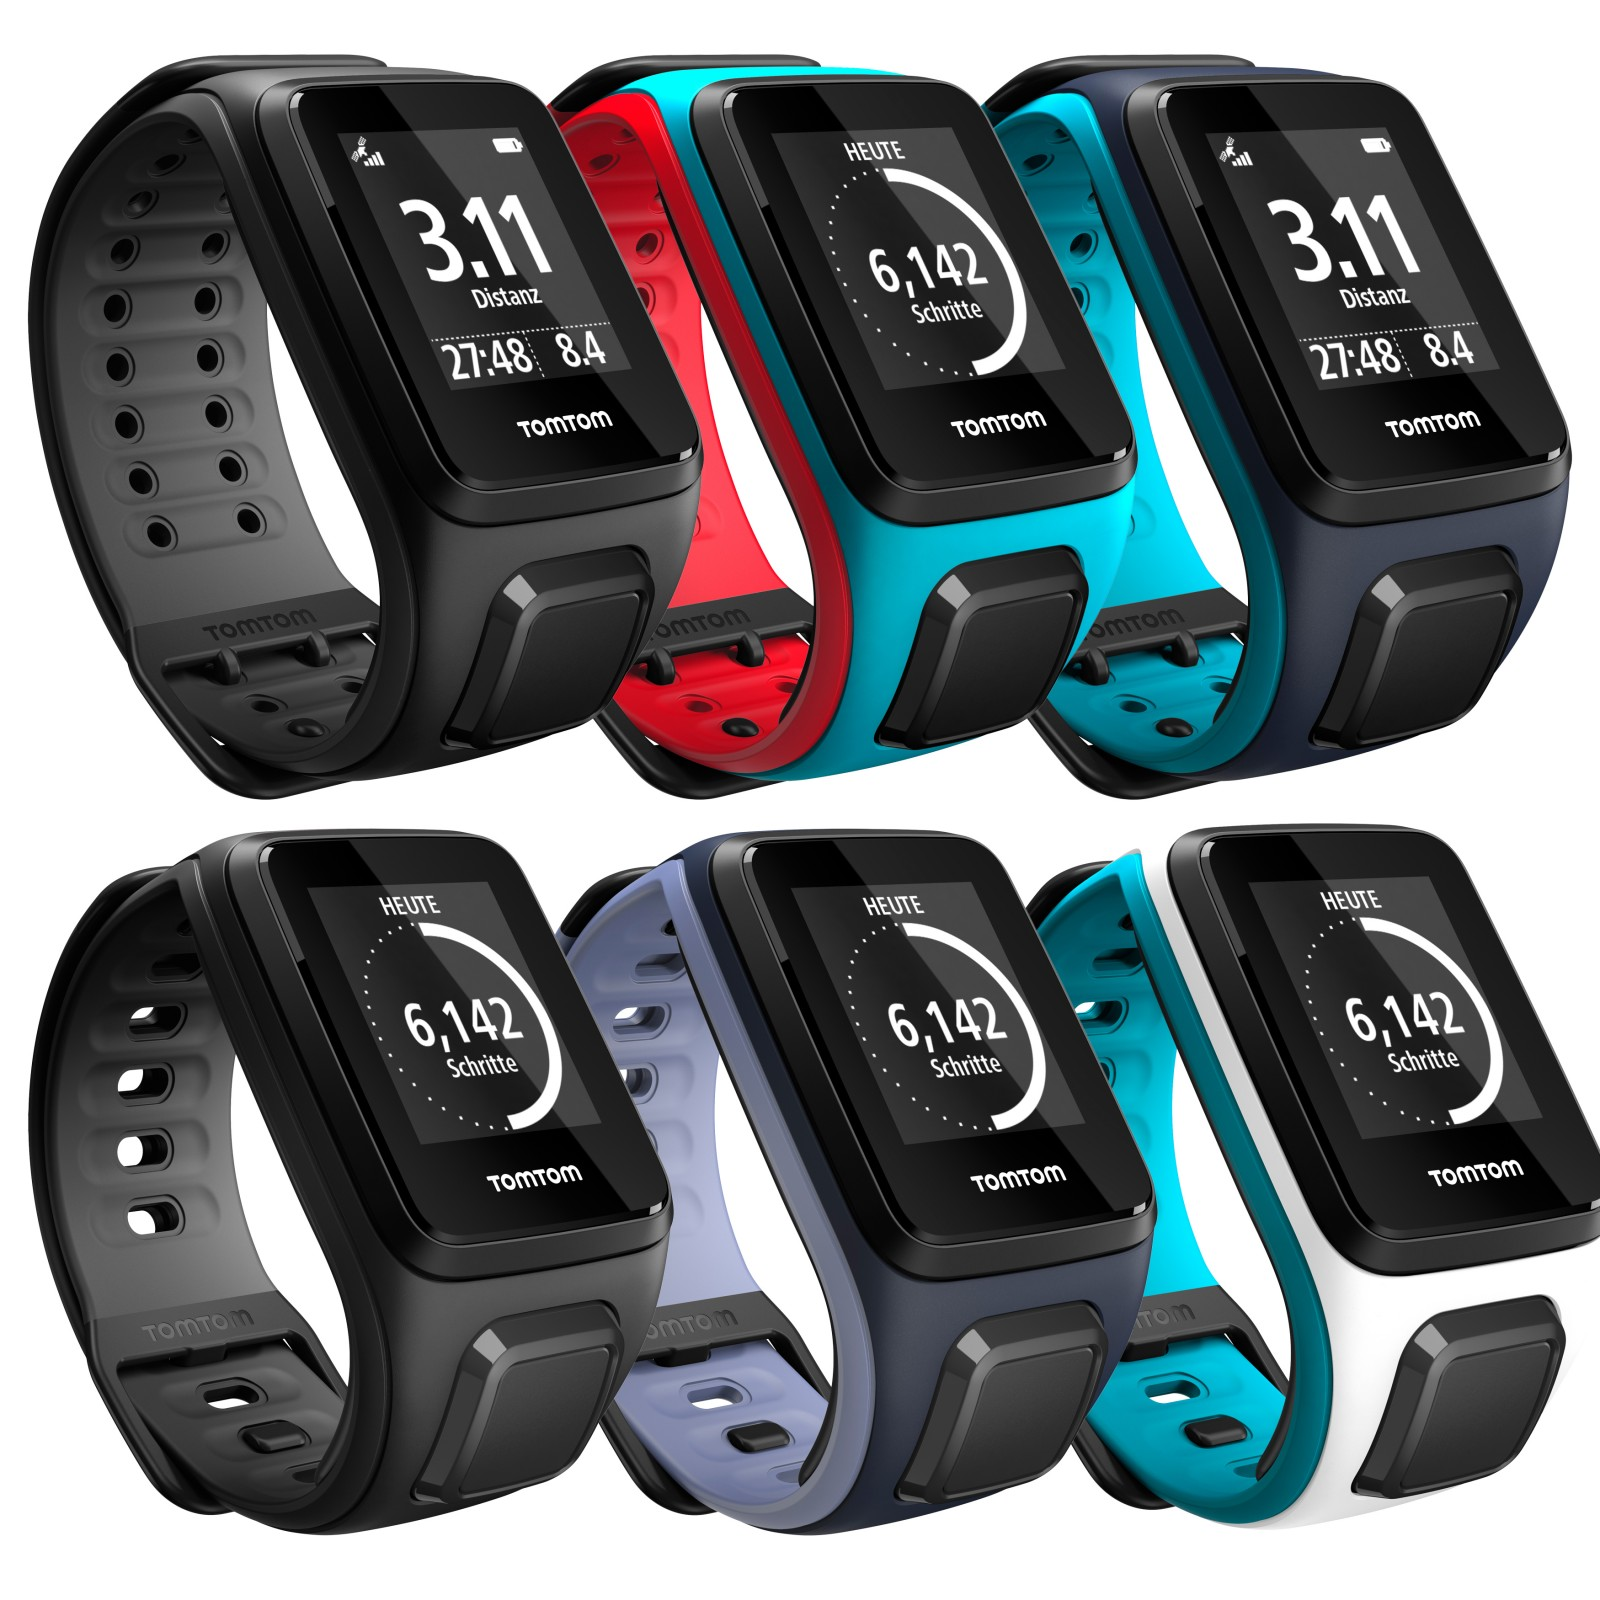 tomtom runner 2 montre de sport gps acheter tester sport tiedje. Black Bedroom Furniture Sets. Home Design Ideas